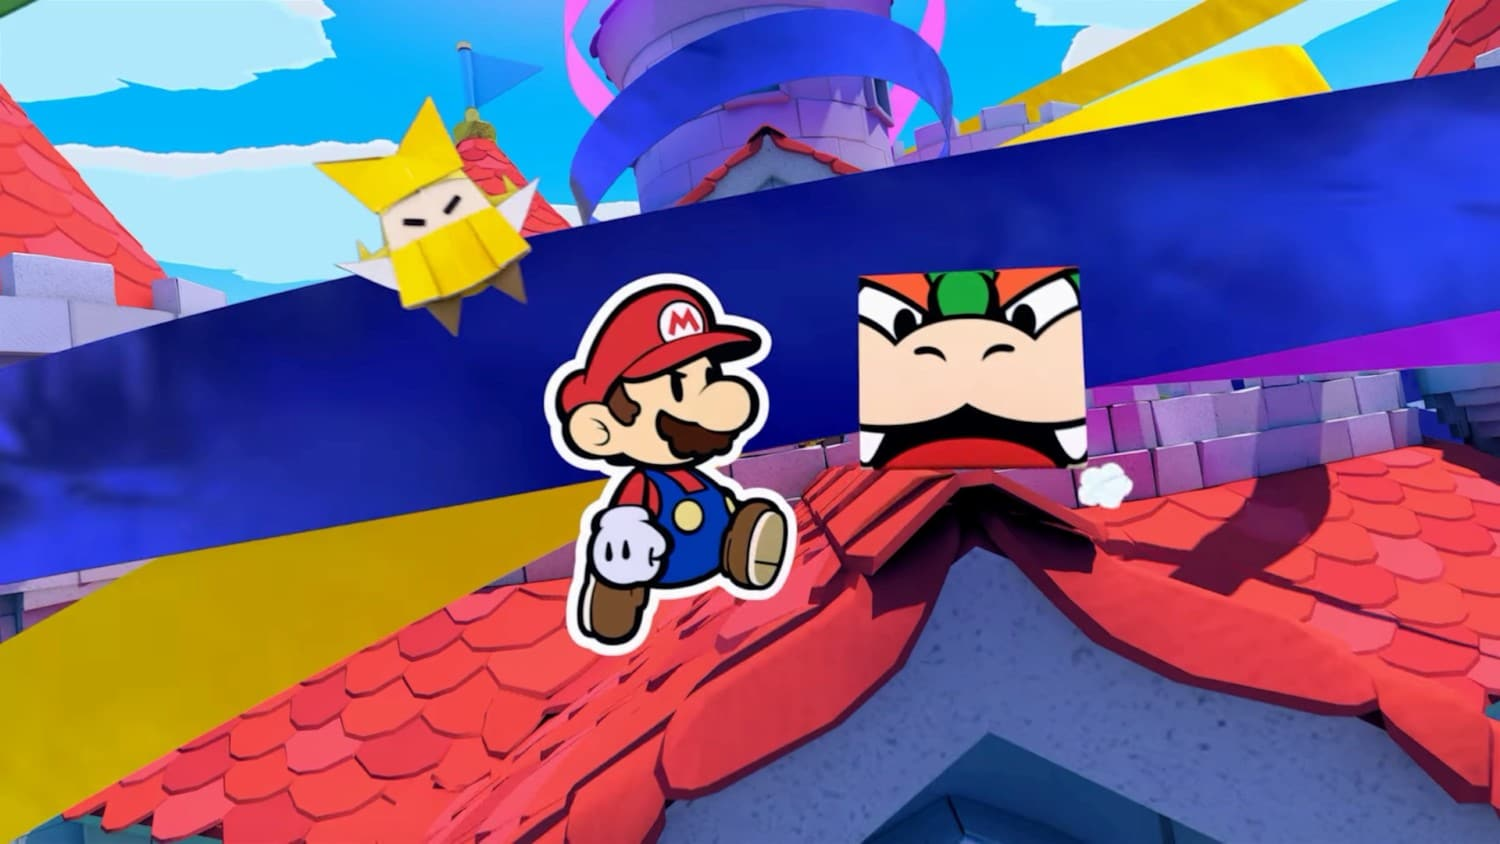 Paper Mario: The Origami King – New Story Details, Combat and Gameplay Features